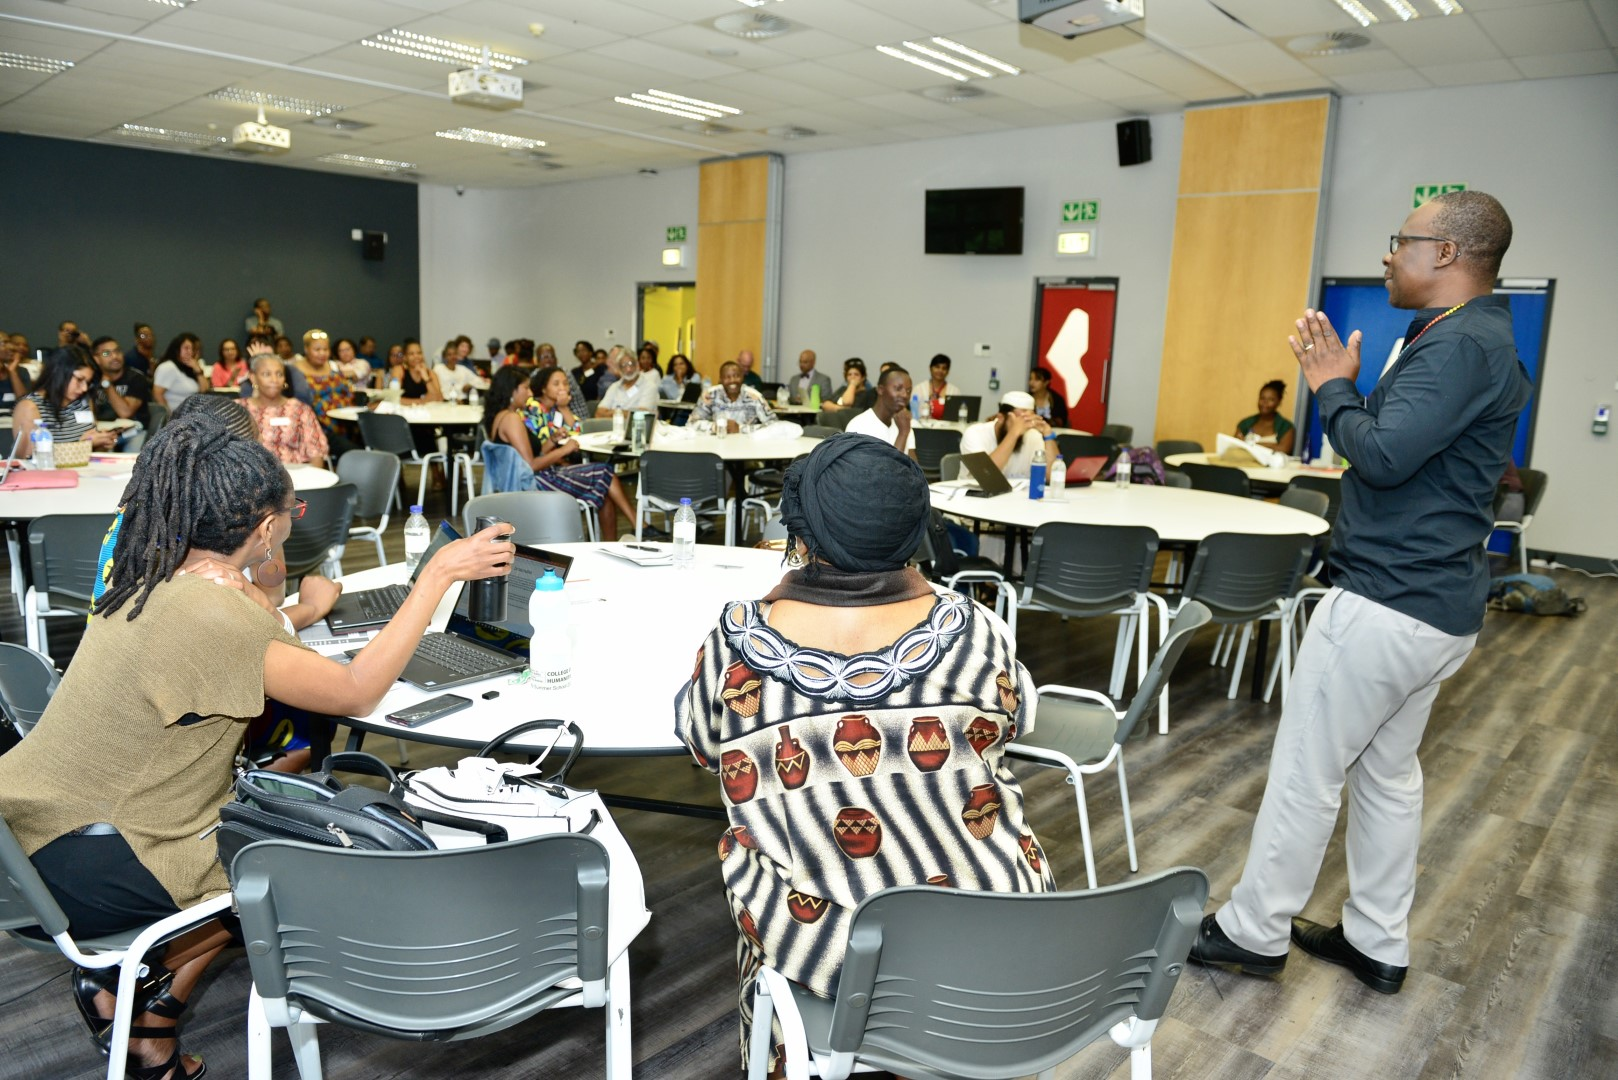 Highlights from the Summer School hosted by the College of Humanities.